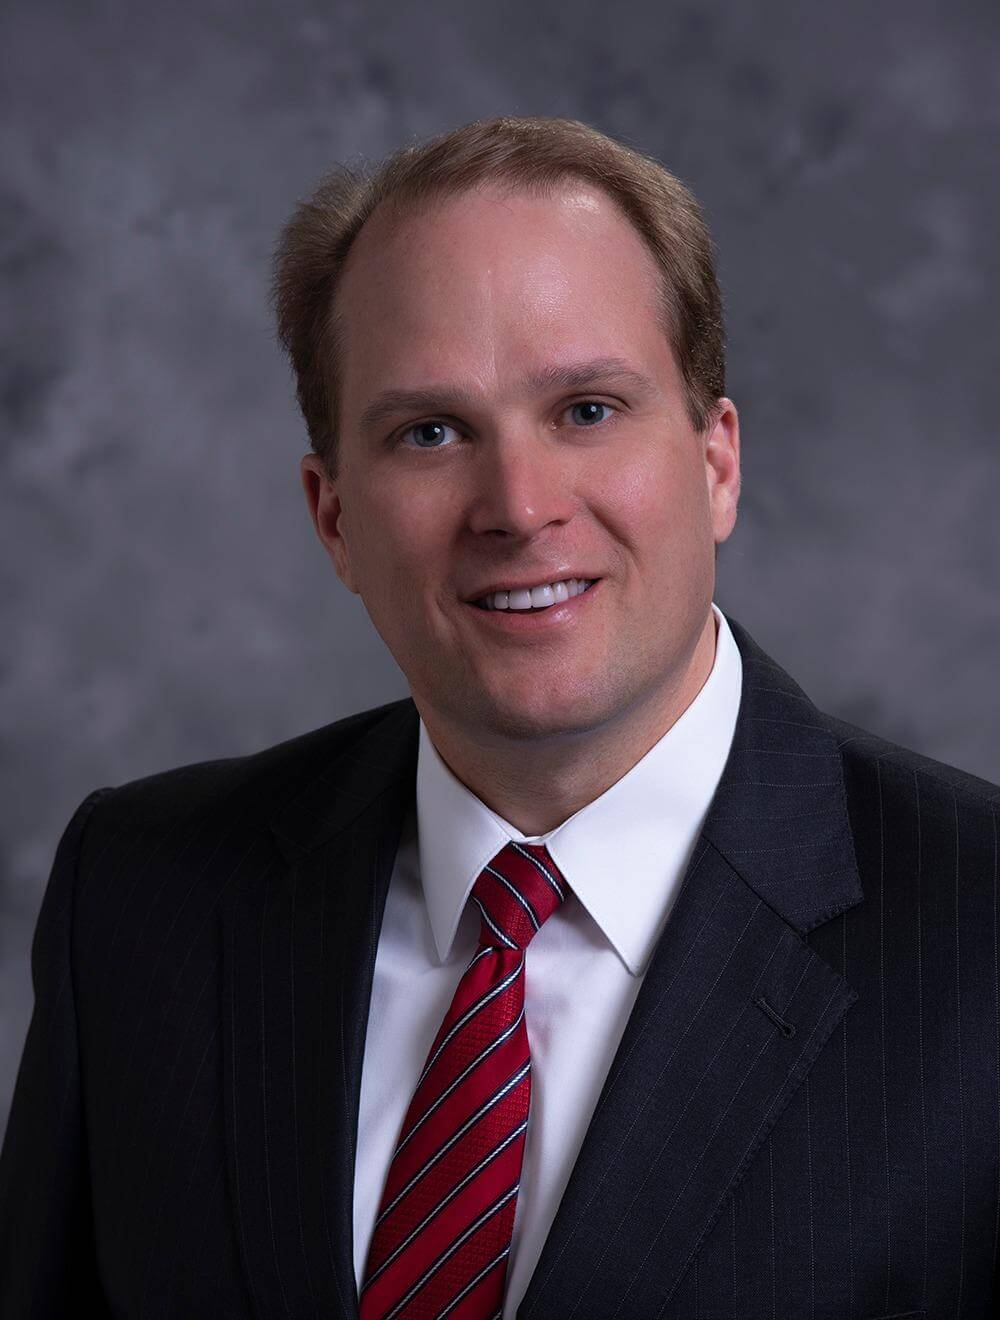 Dale R. Thompson CMA, Chief Financial Officer